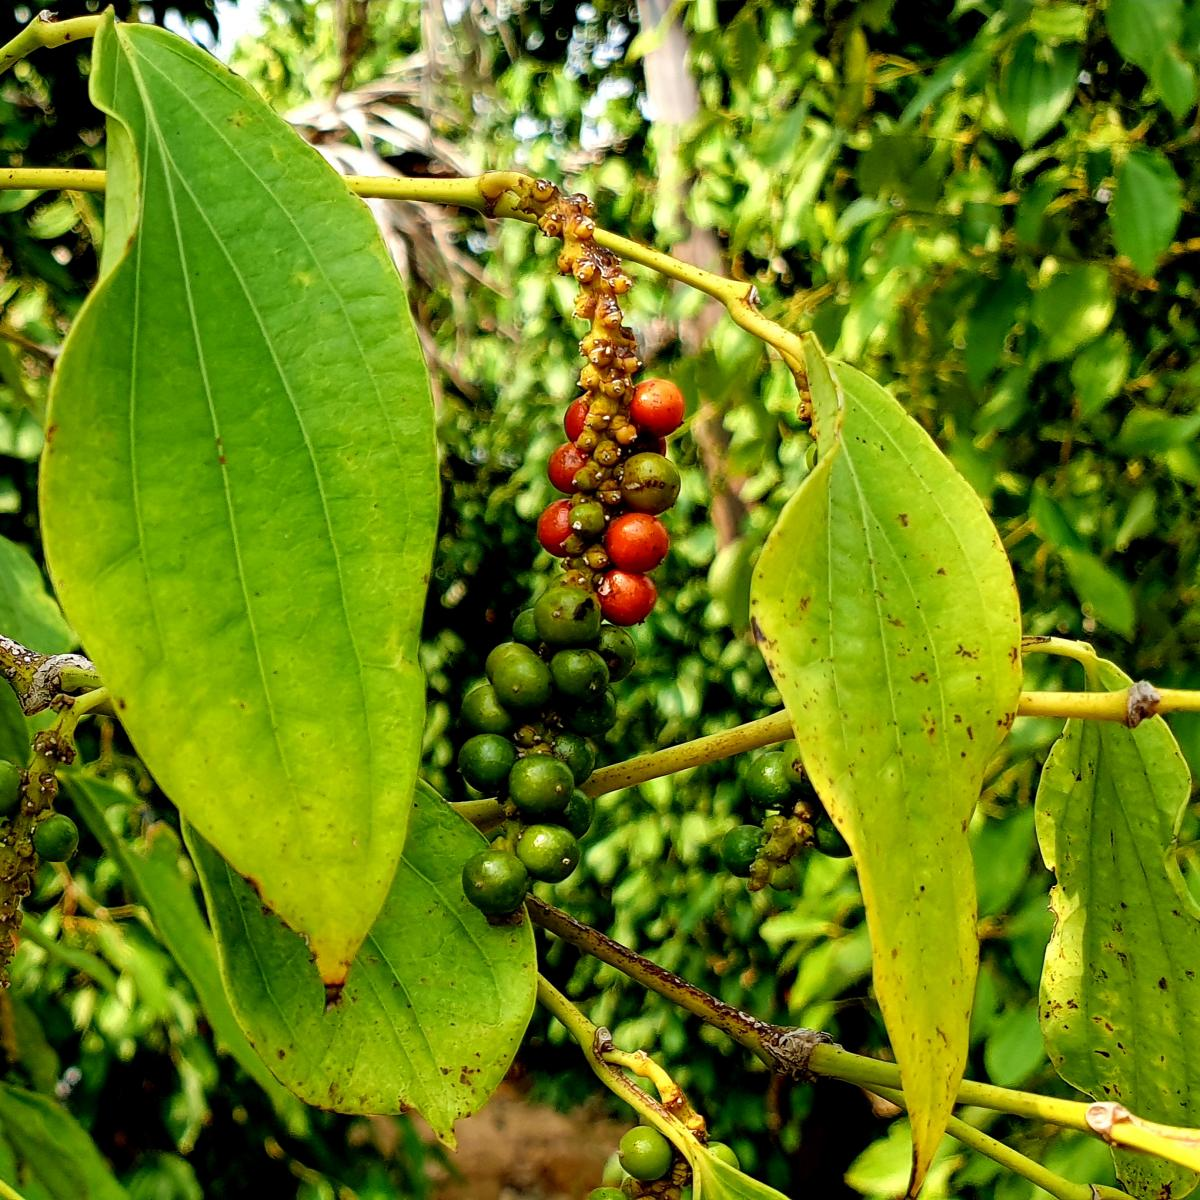 Red peppercorns beginning to mature before harvest at La Plantation.